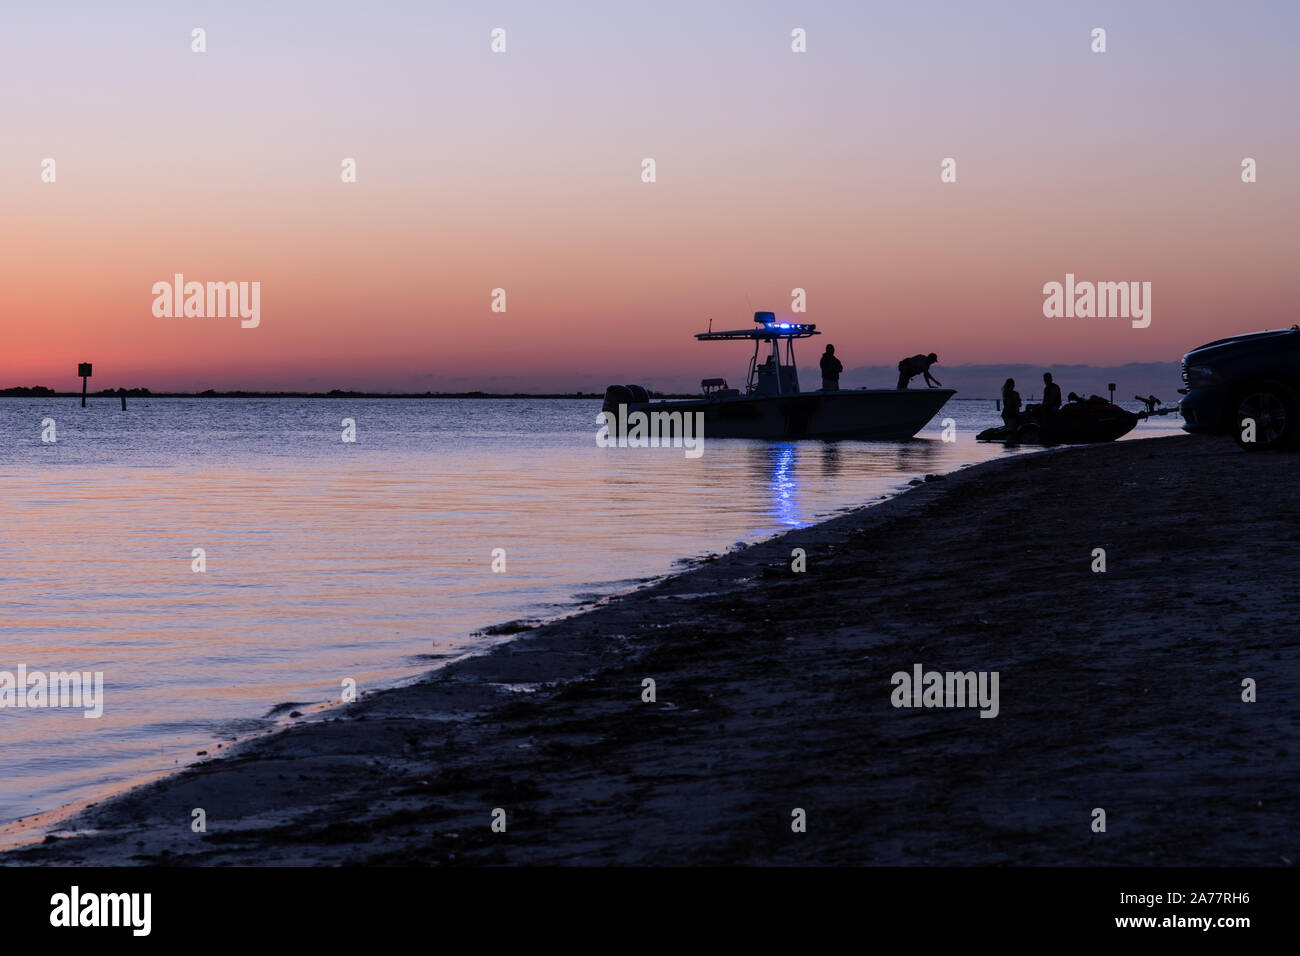 Silhouette of boat of Florida fish and wildlife officers at Dunedin Causeway in Dunedin, Florida, USA. Beautiful scenic seascape at sunset. Dunedin is Stock Photo